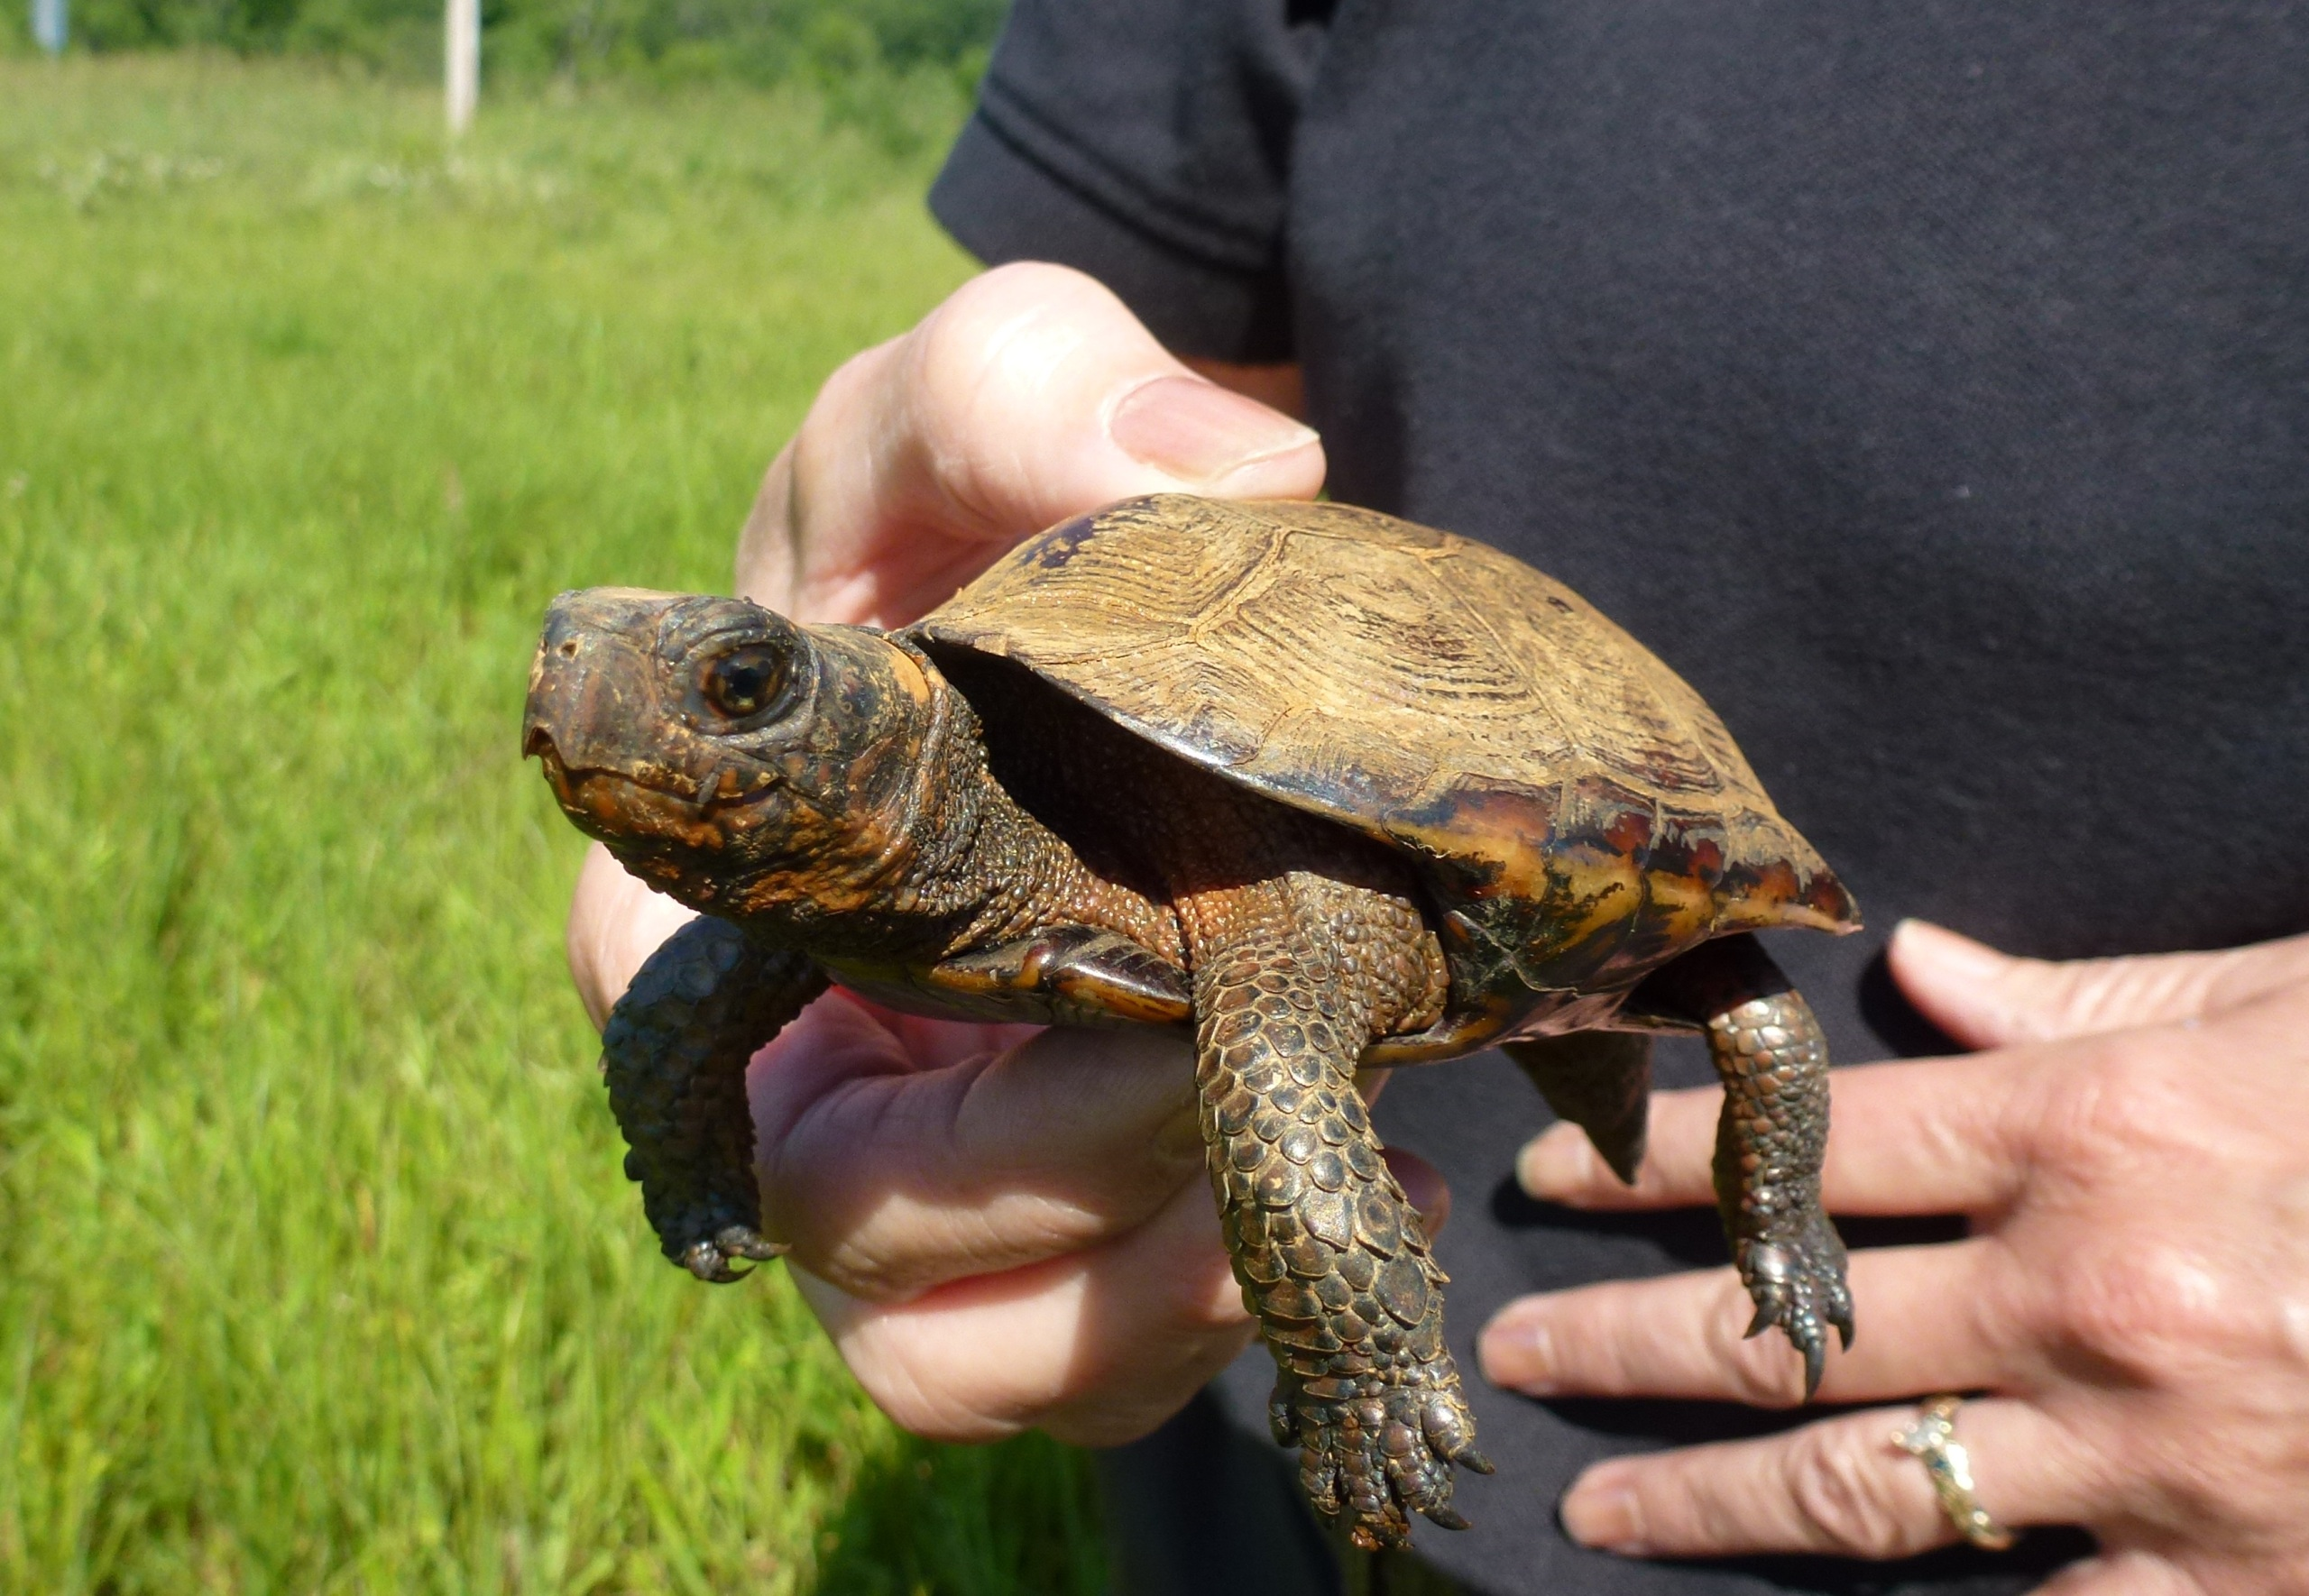 An older bog turtle found during a survey. Credit: Bethany Holbrook/USFWS